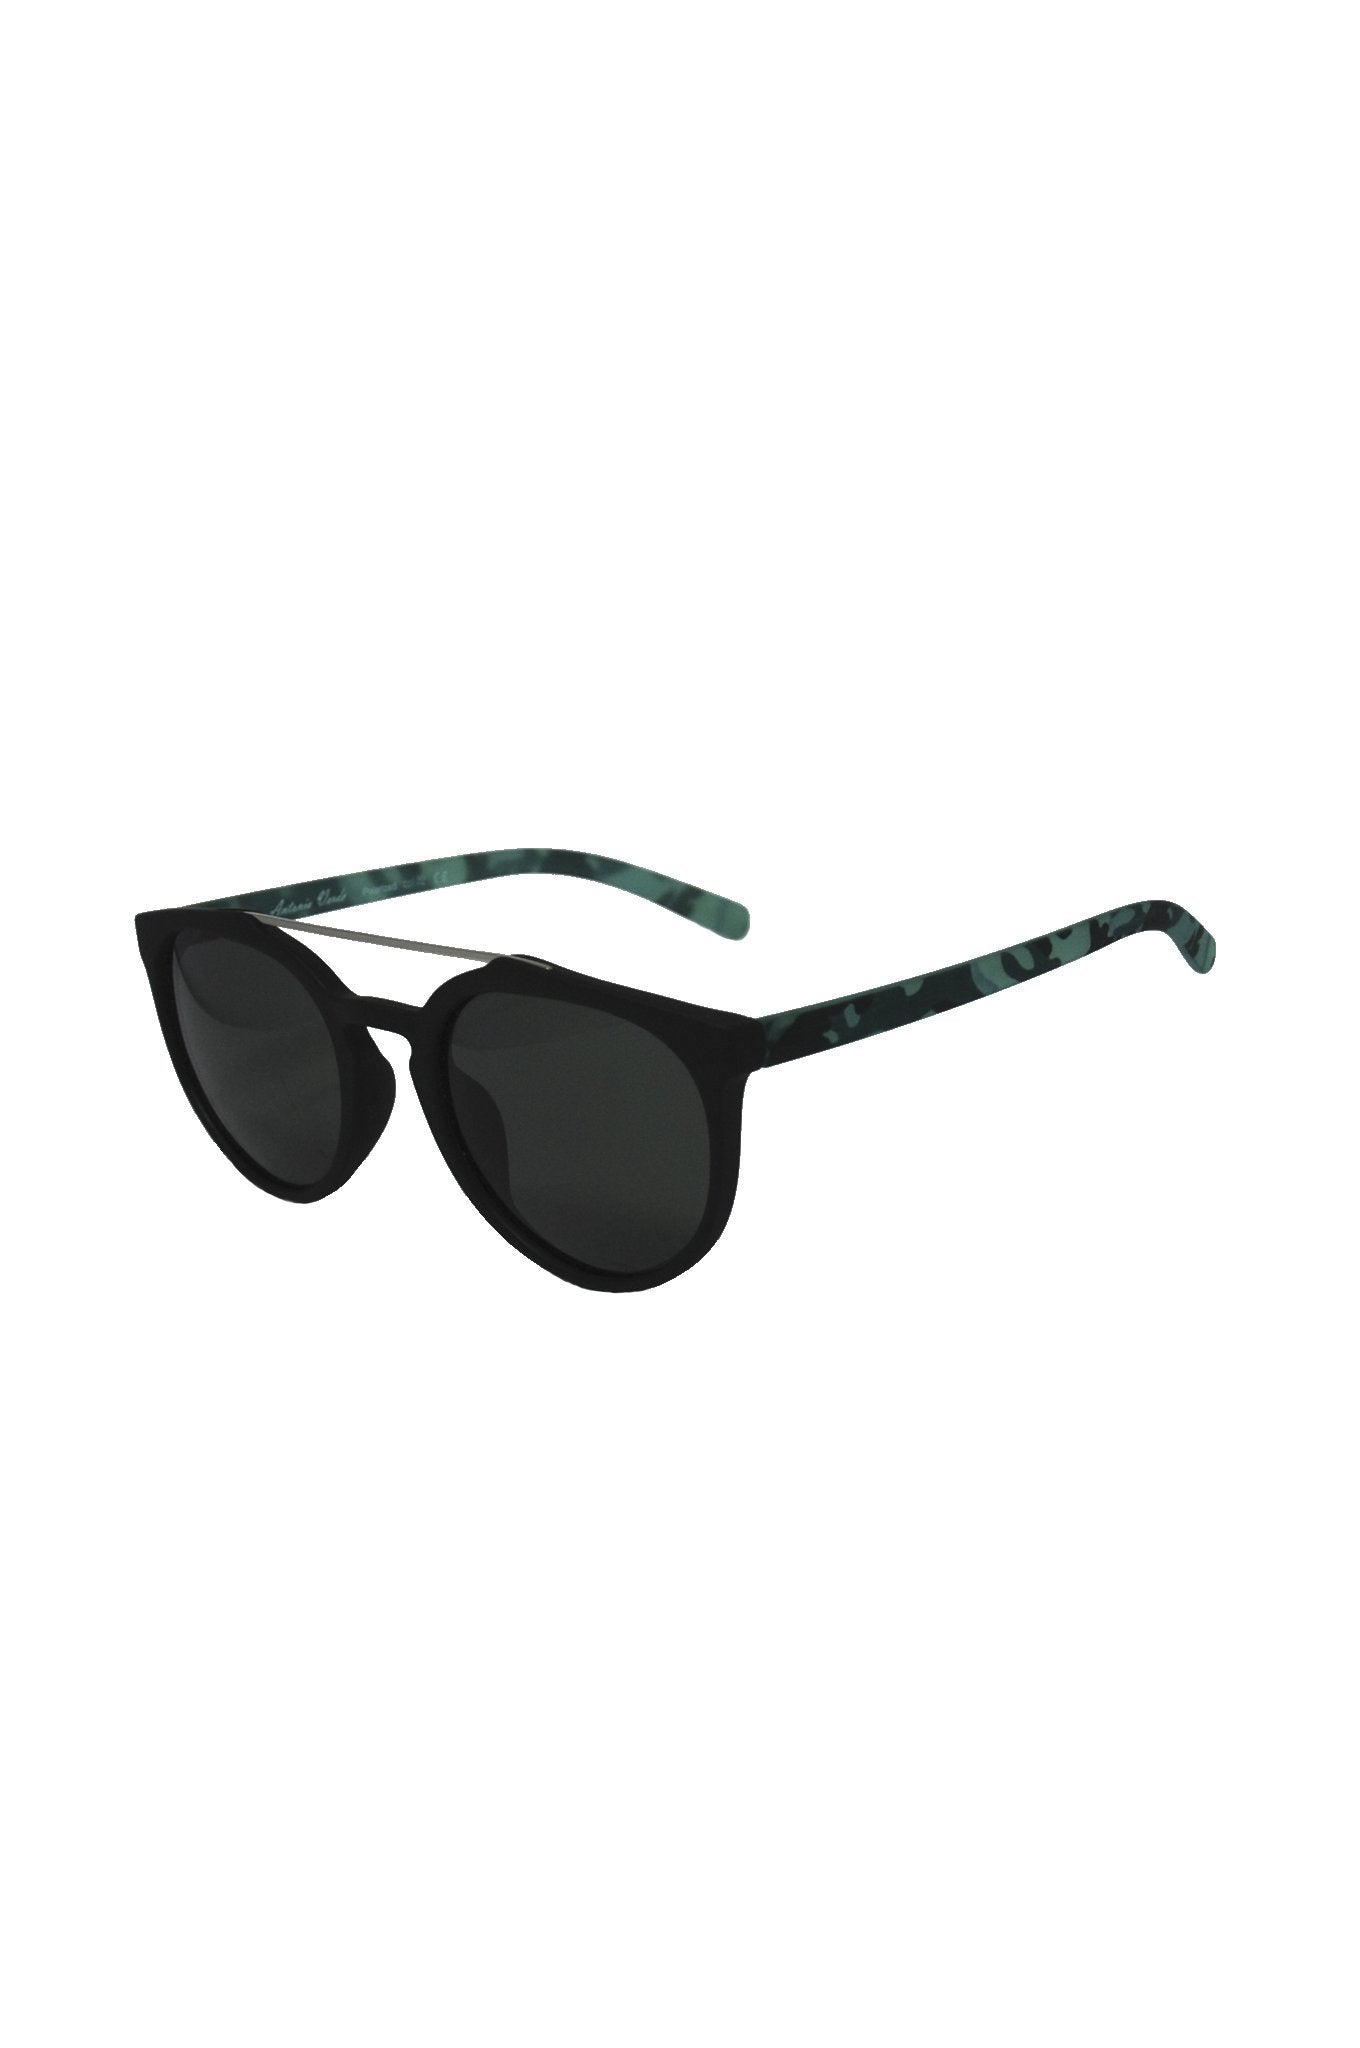 Sunglasses - Zaragoza Black